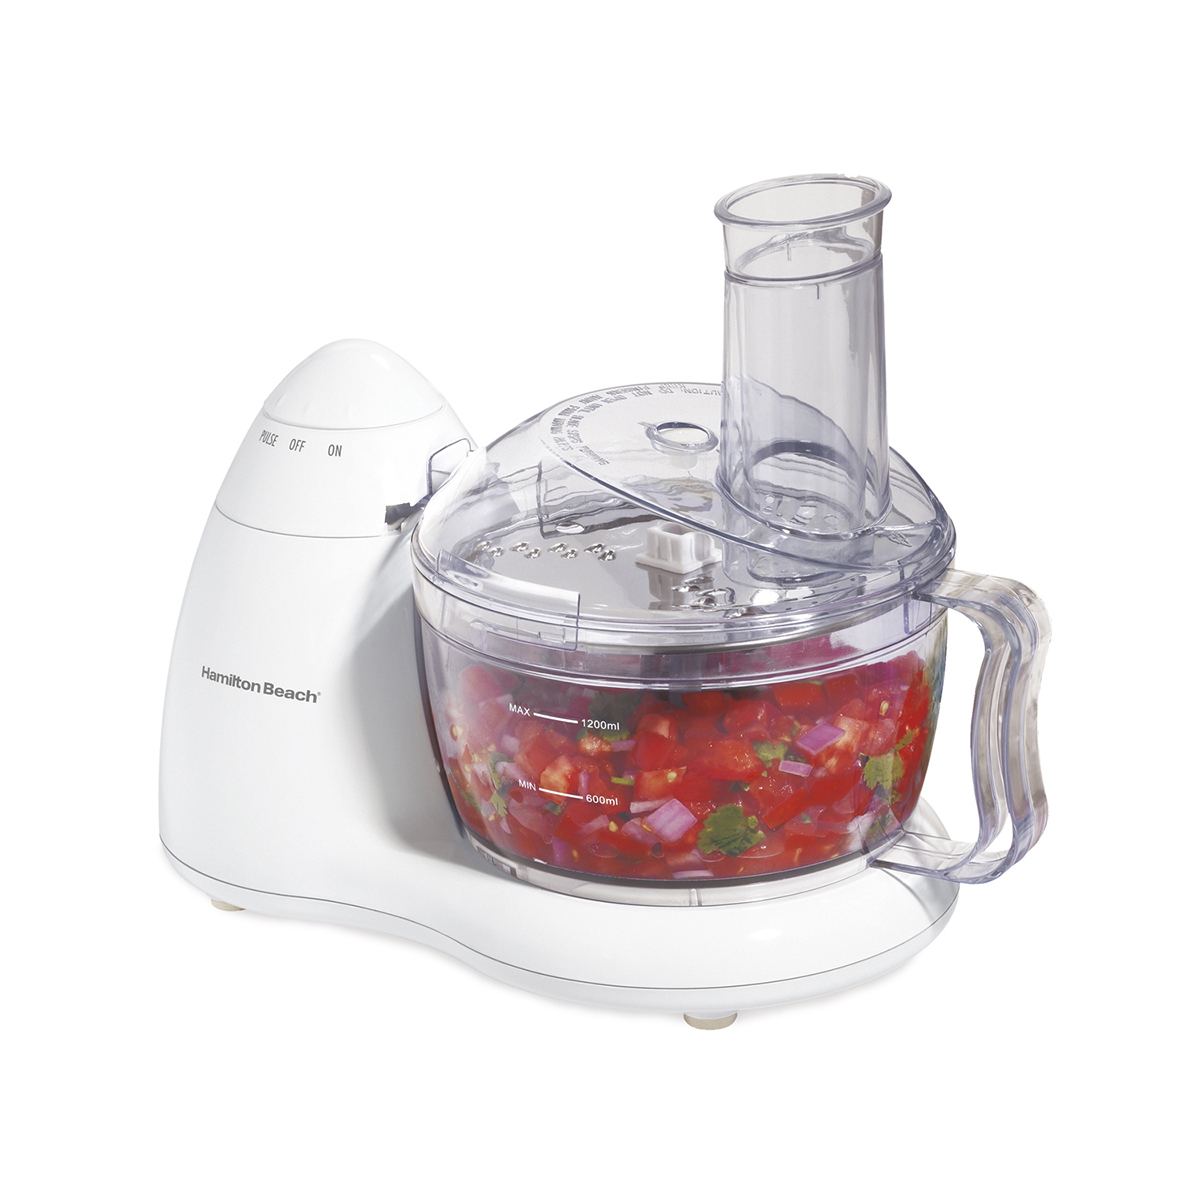 Food Processor, 8 Cup Bowl - White (70450)